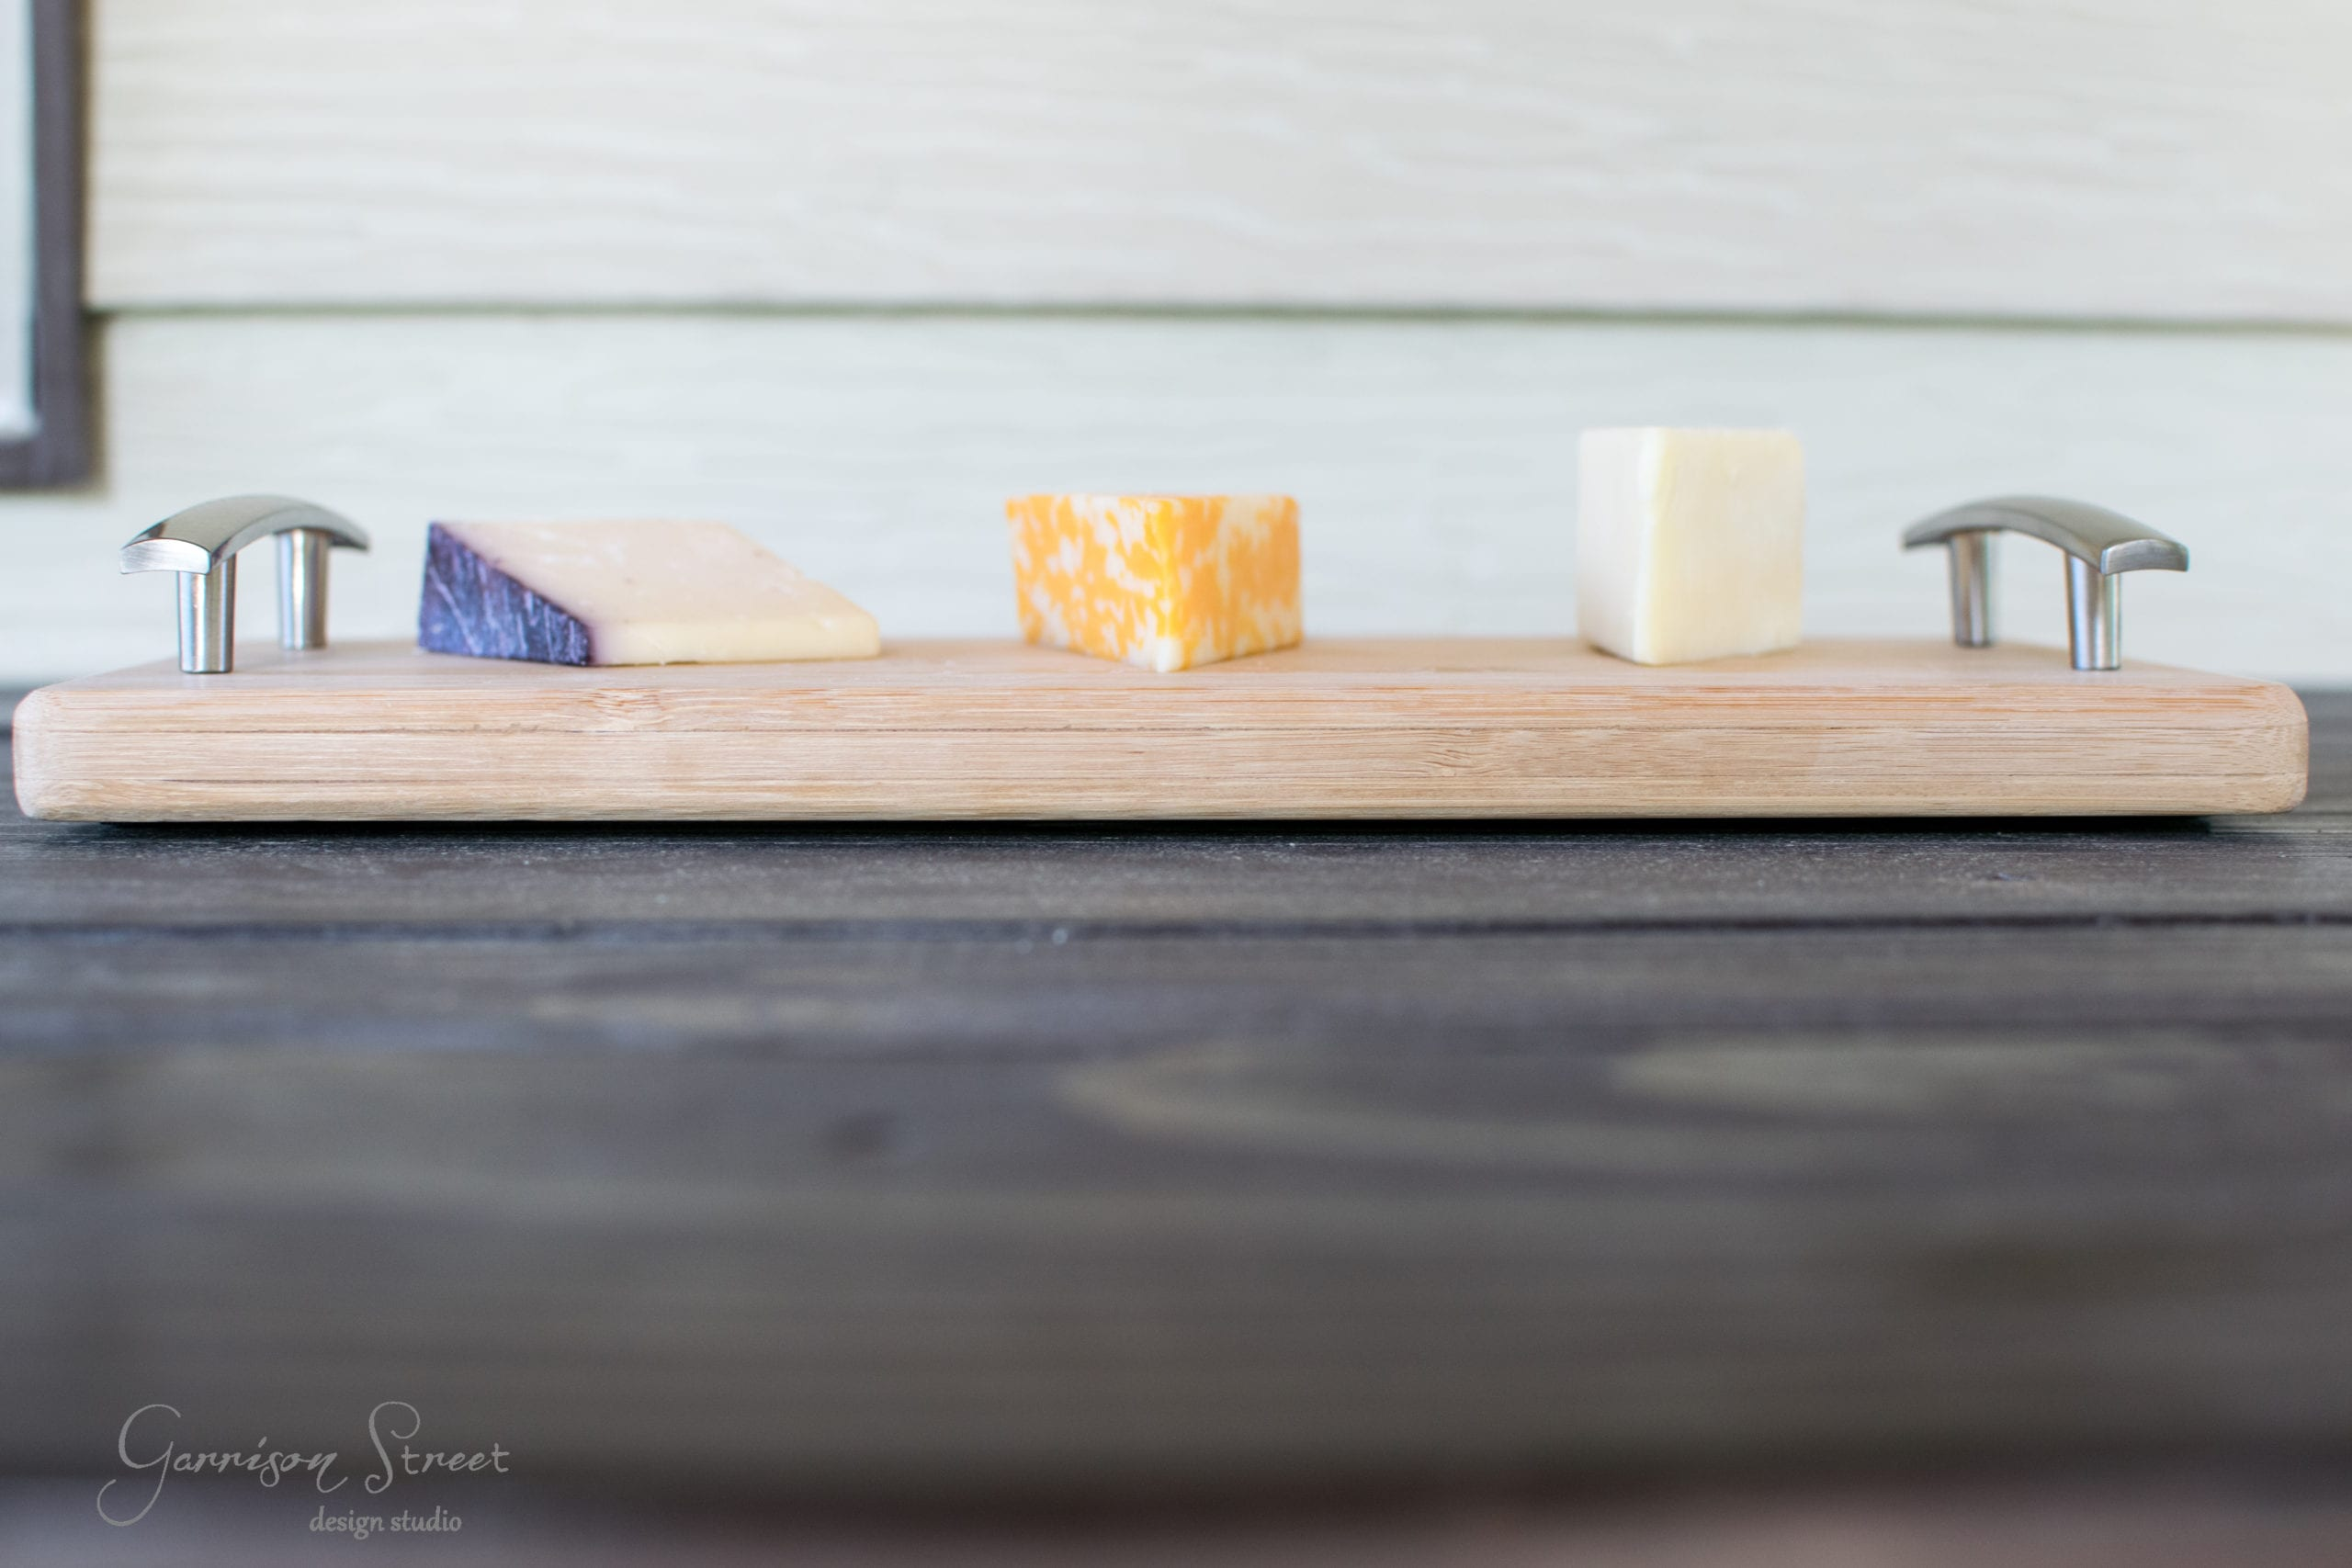 10 Minute DIY Serving Tray